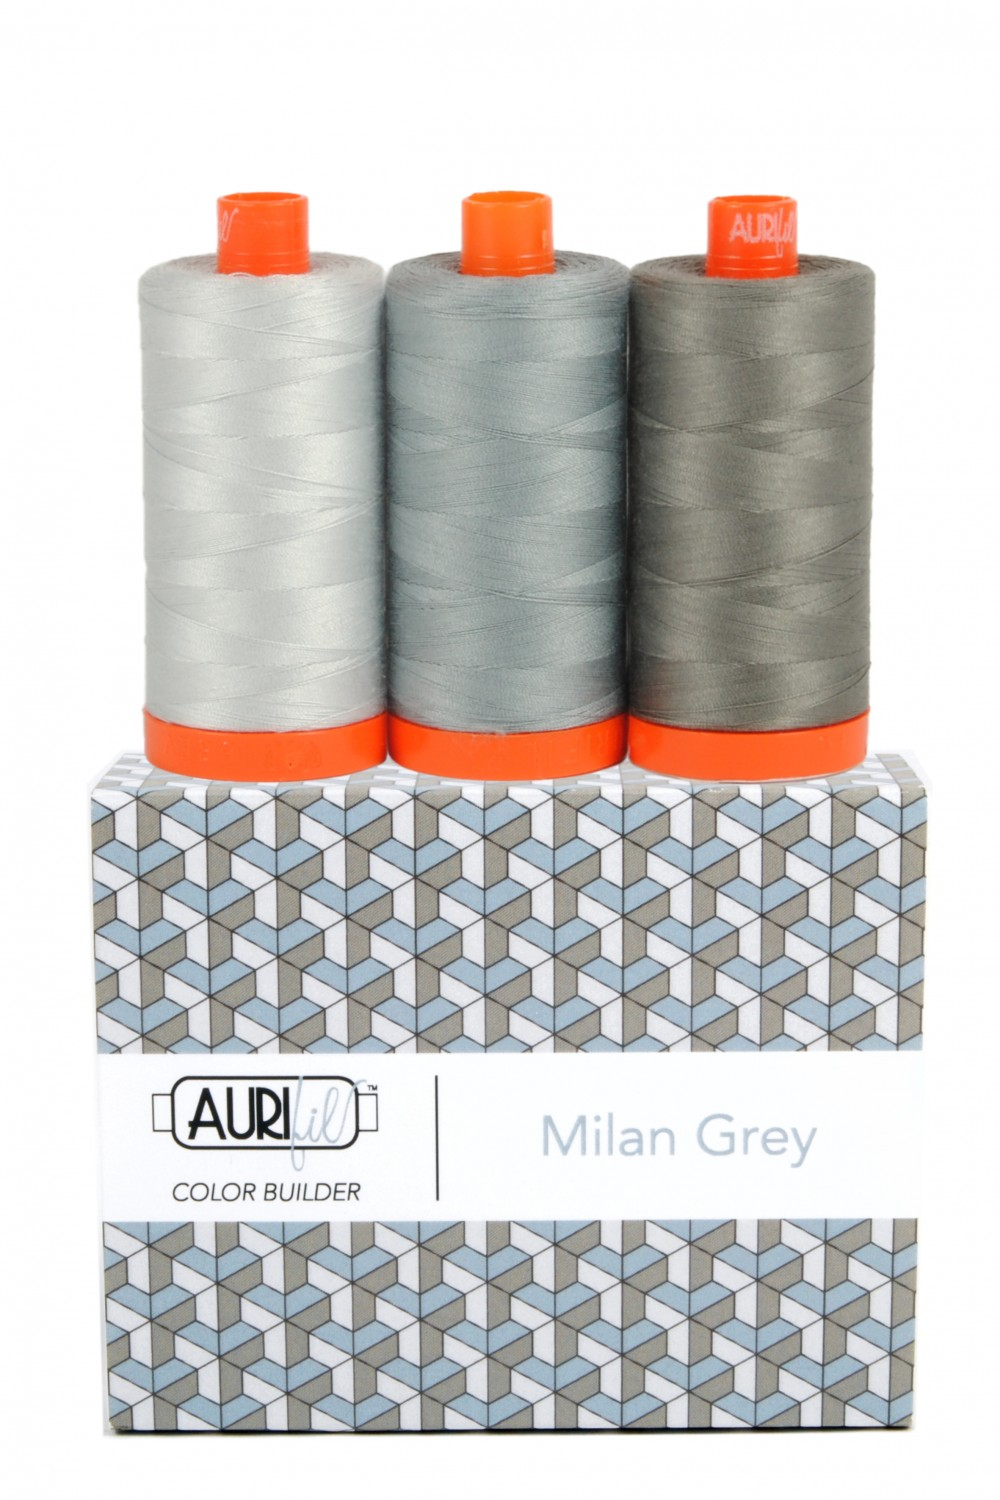 Aurifil Mako Cotton Thread - Color Builder Set